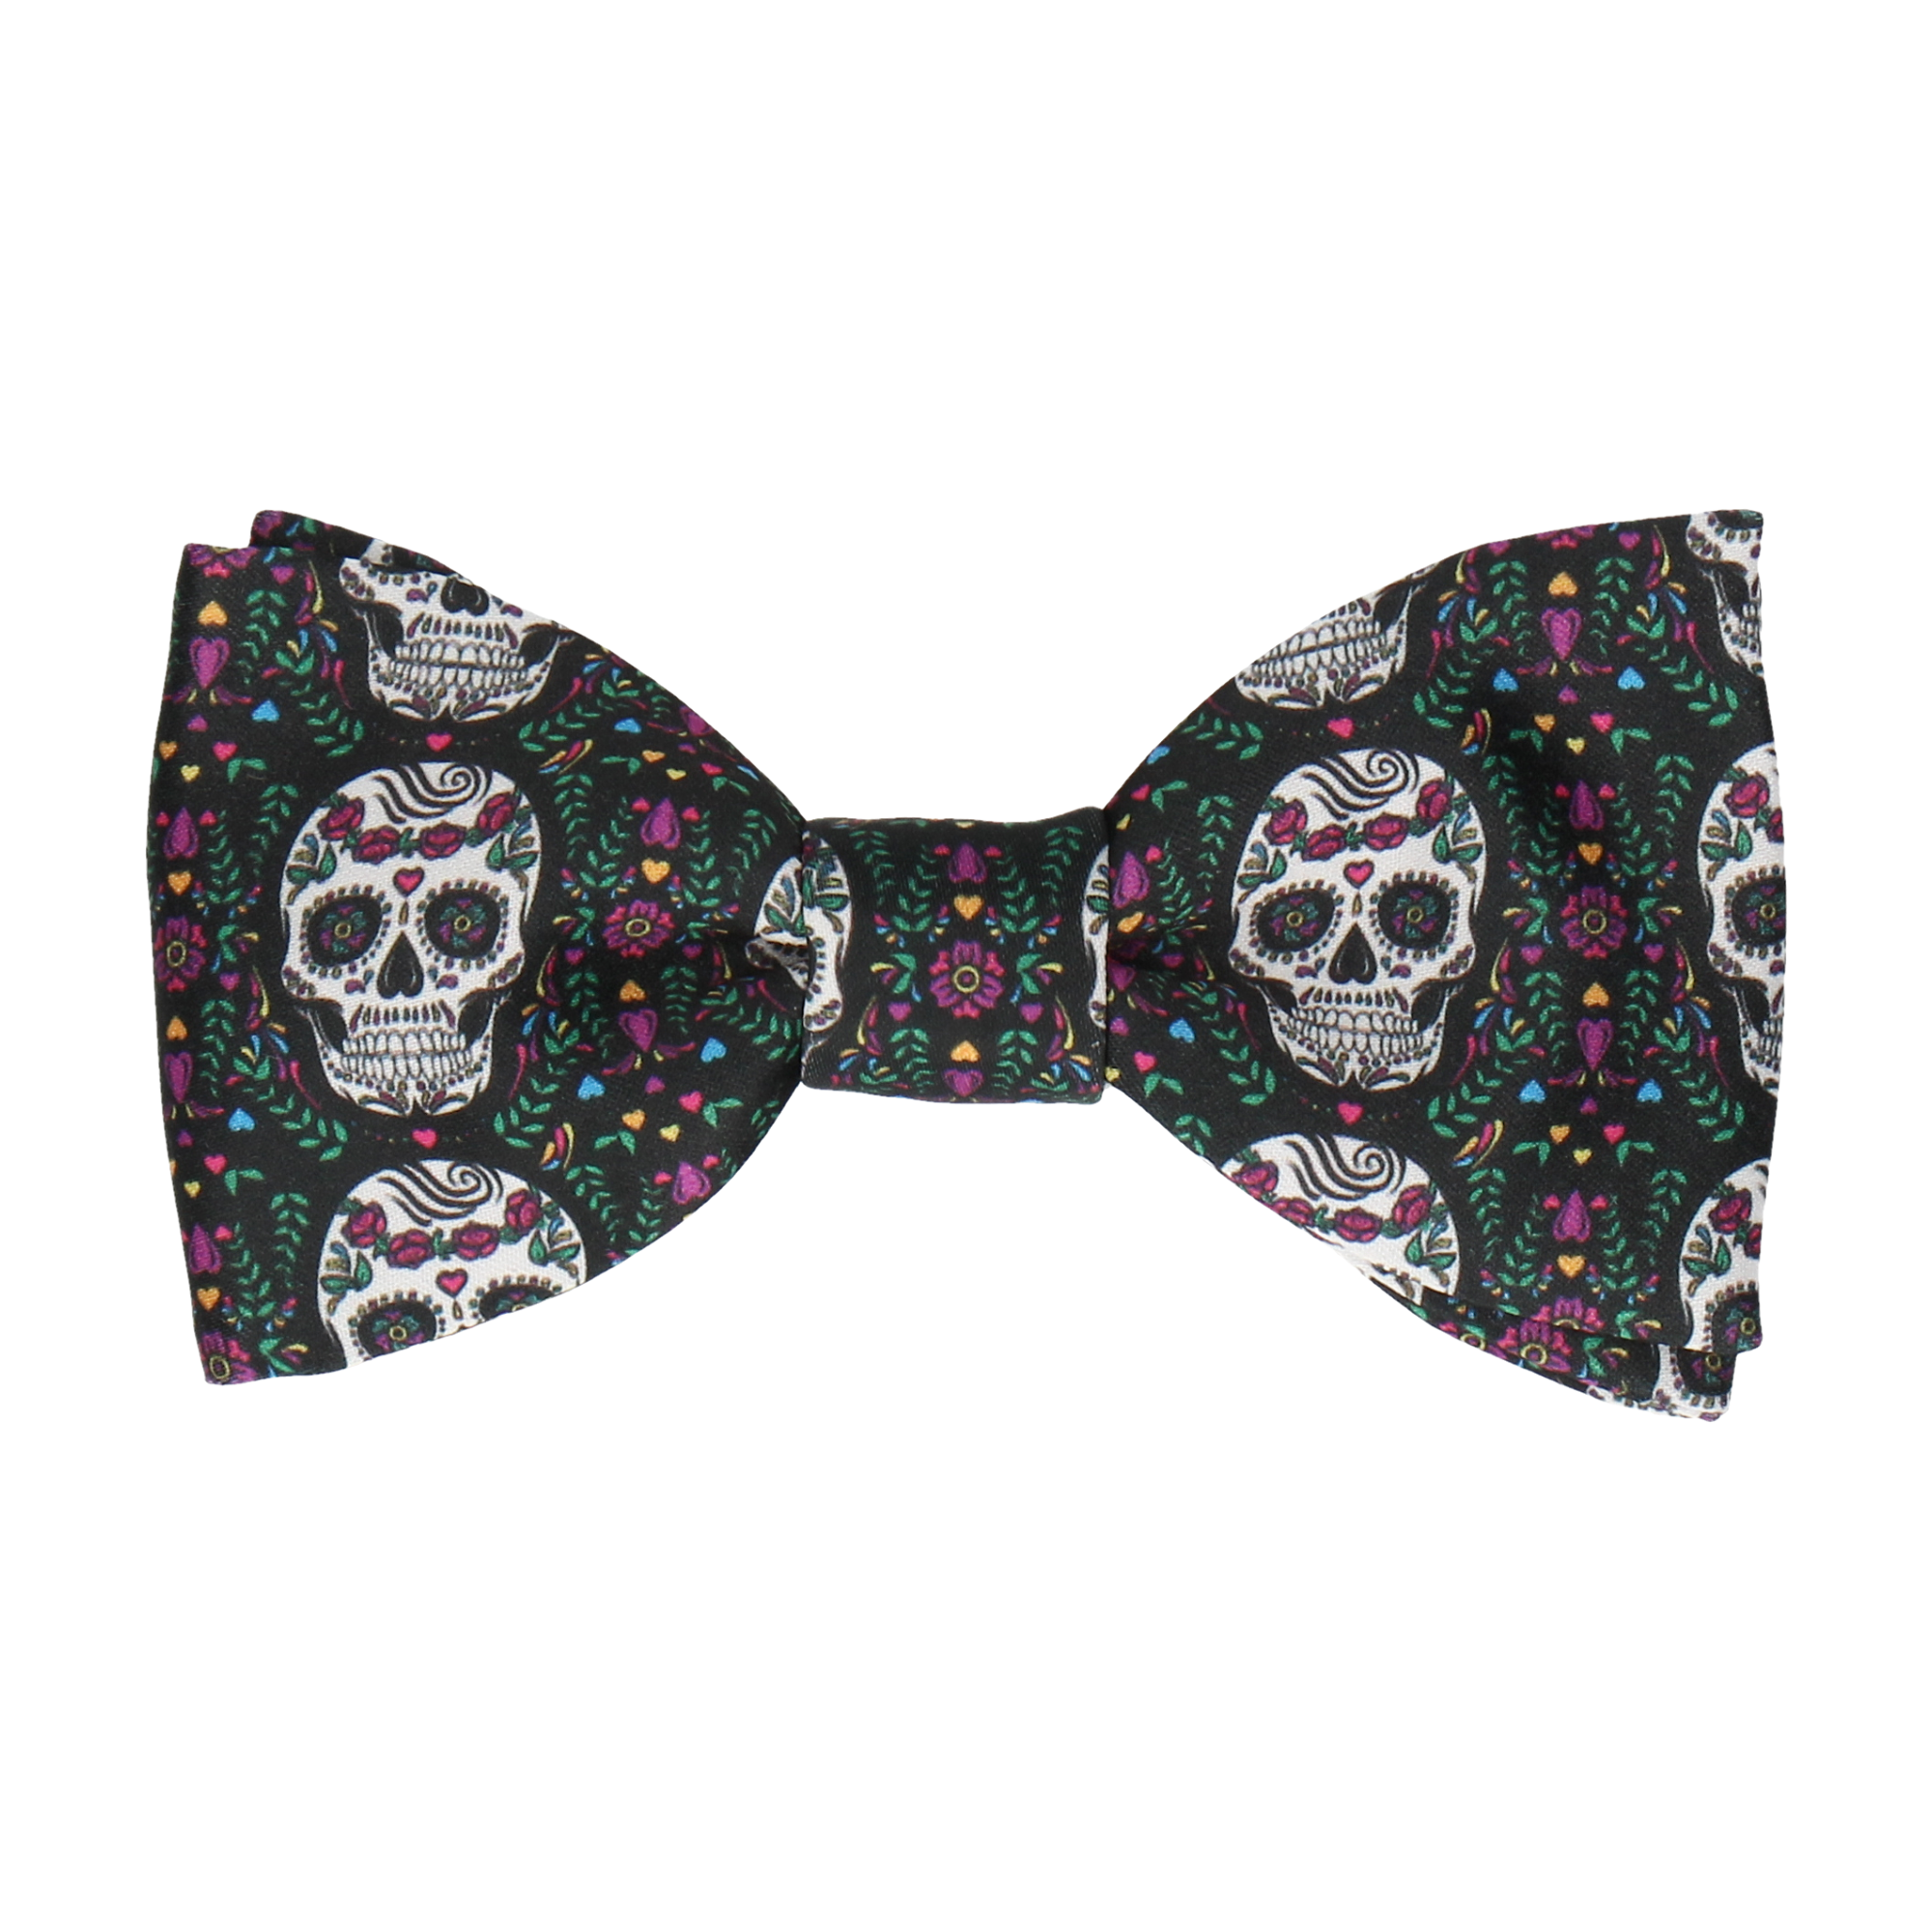 Sugar Skulls in Black Bow Tie